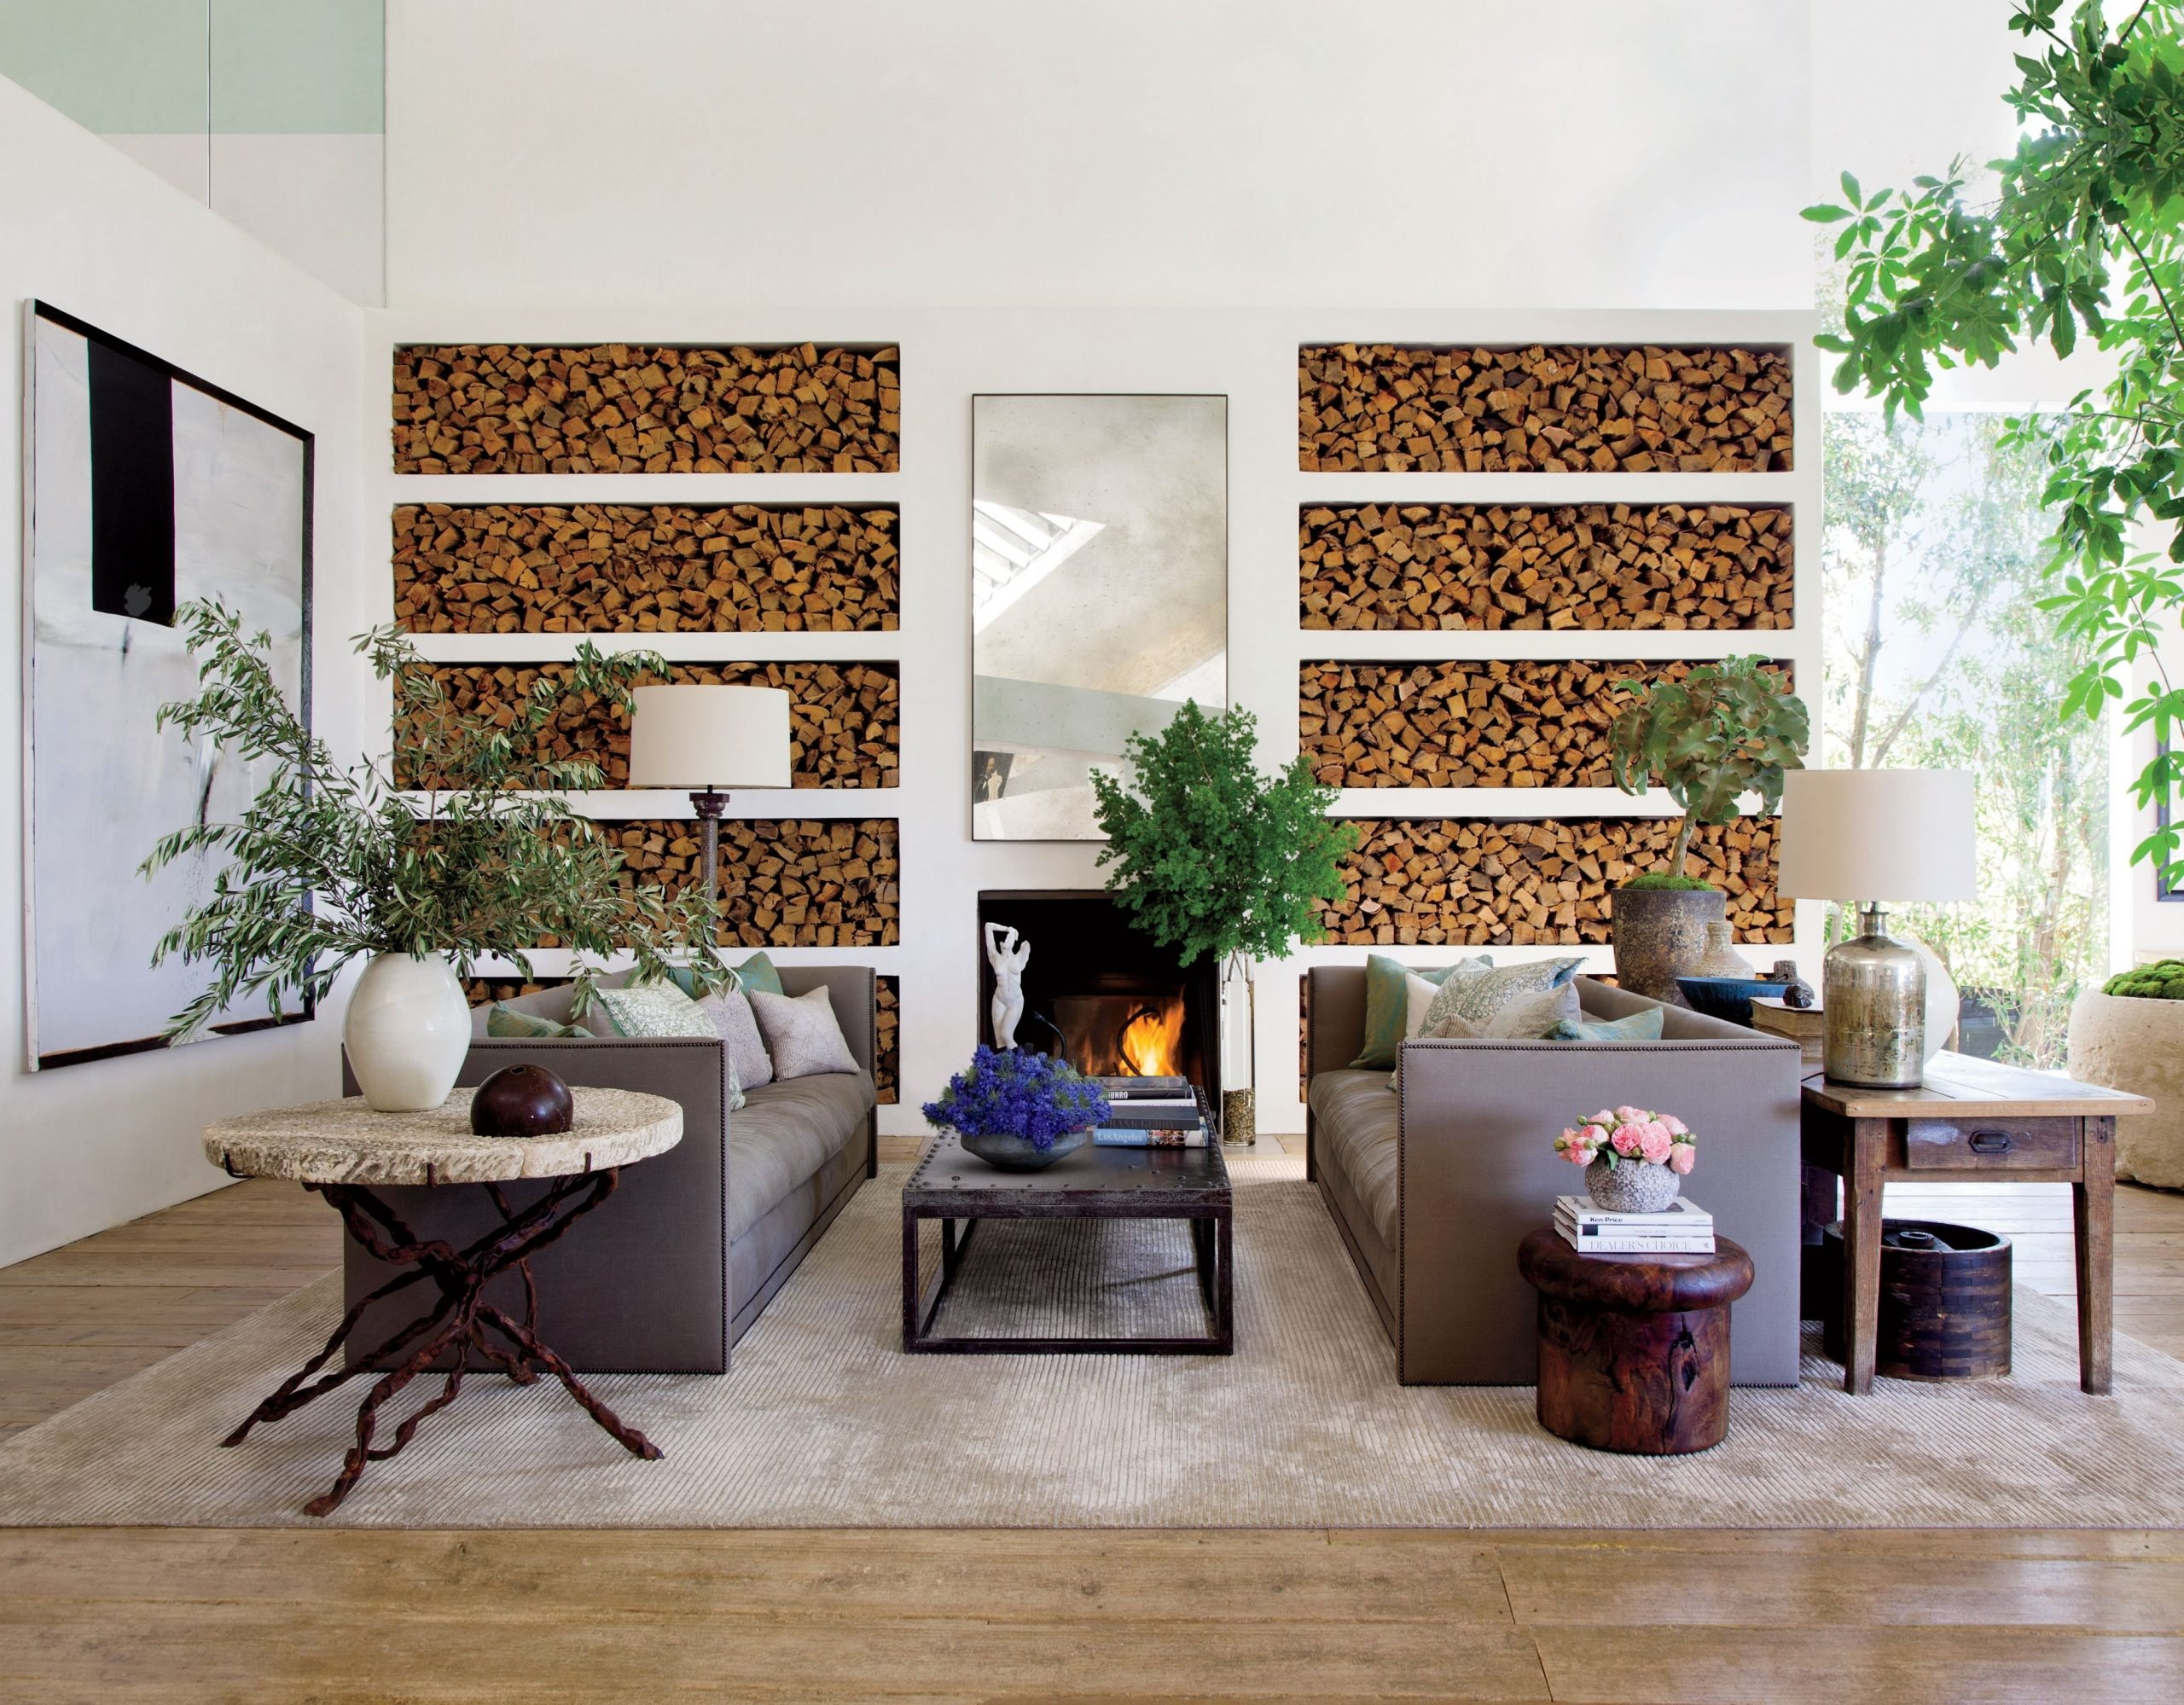 Fireplace Ideas And Fireplace Designs Photos regarding Living Room Decorating Ideas With Fireplace